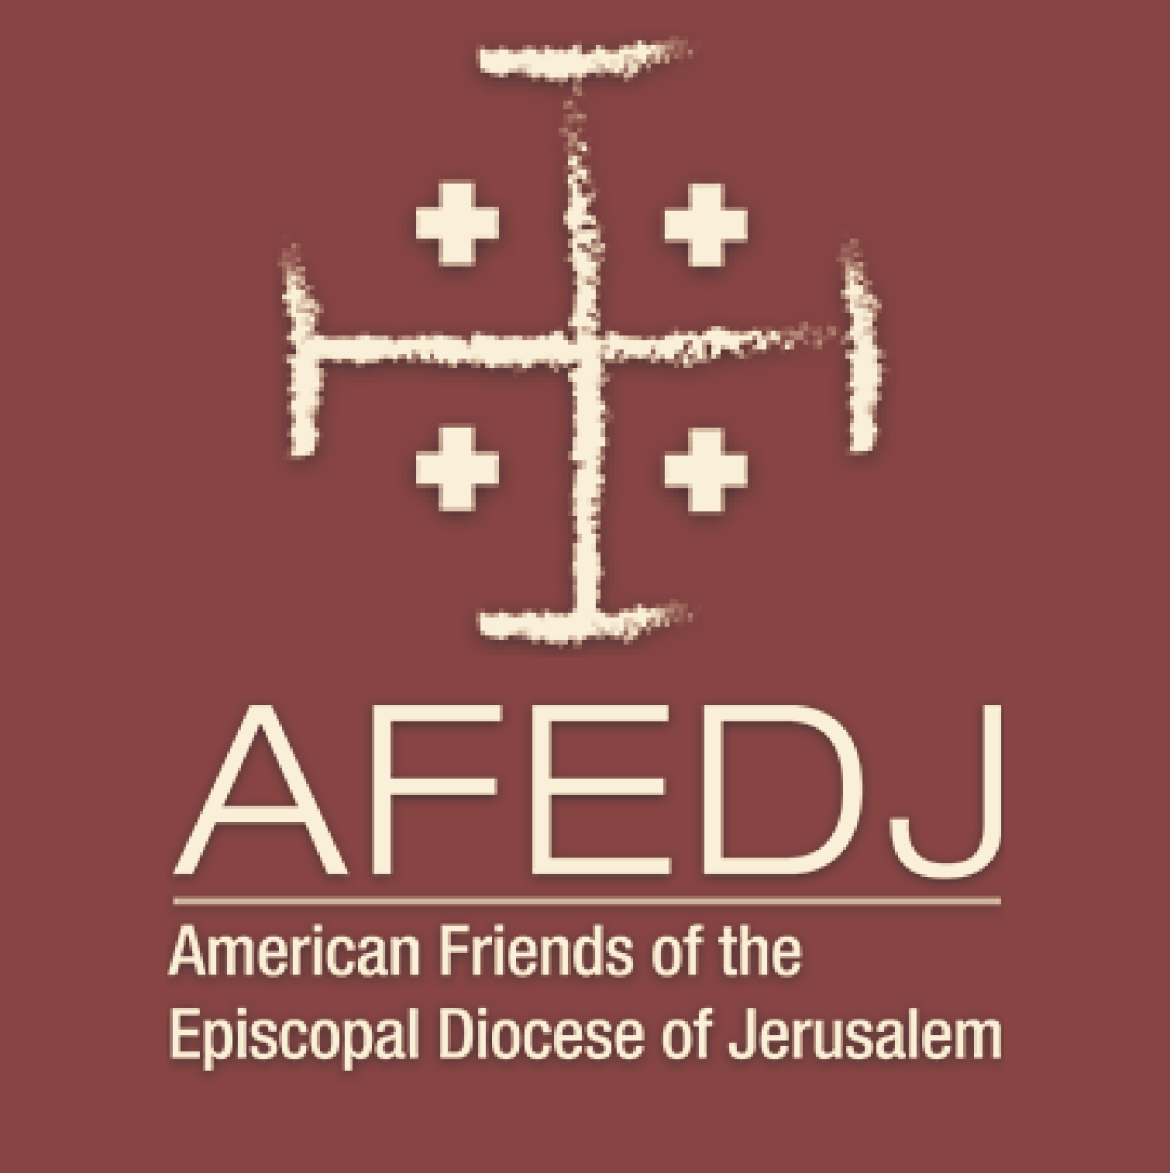 Connections: The American Friends of the Episcopal Diocese of Jerusalem